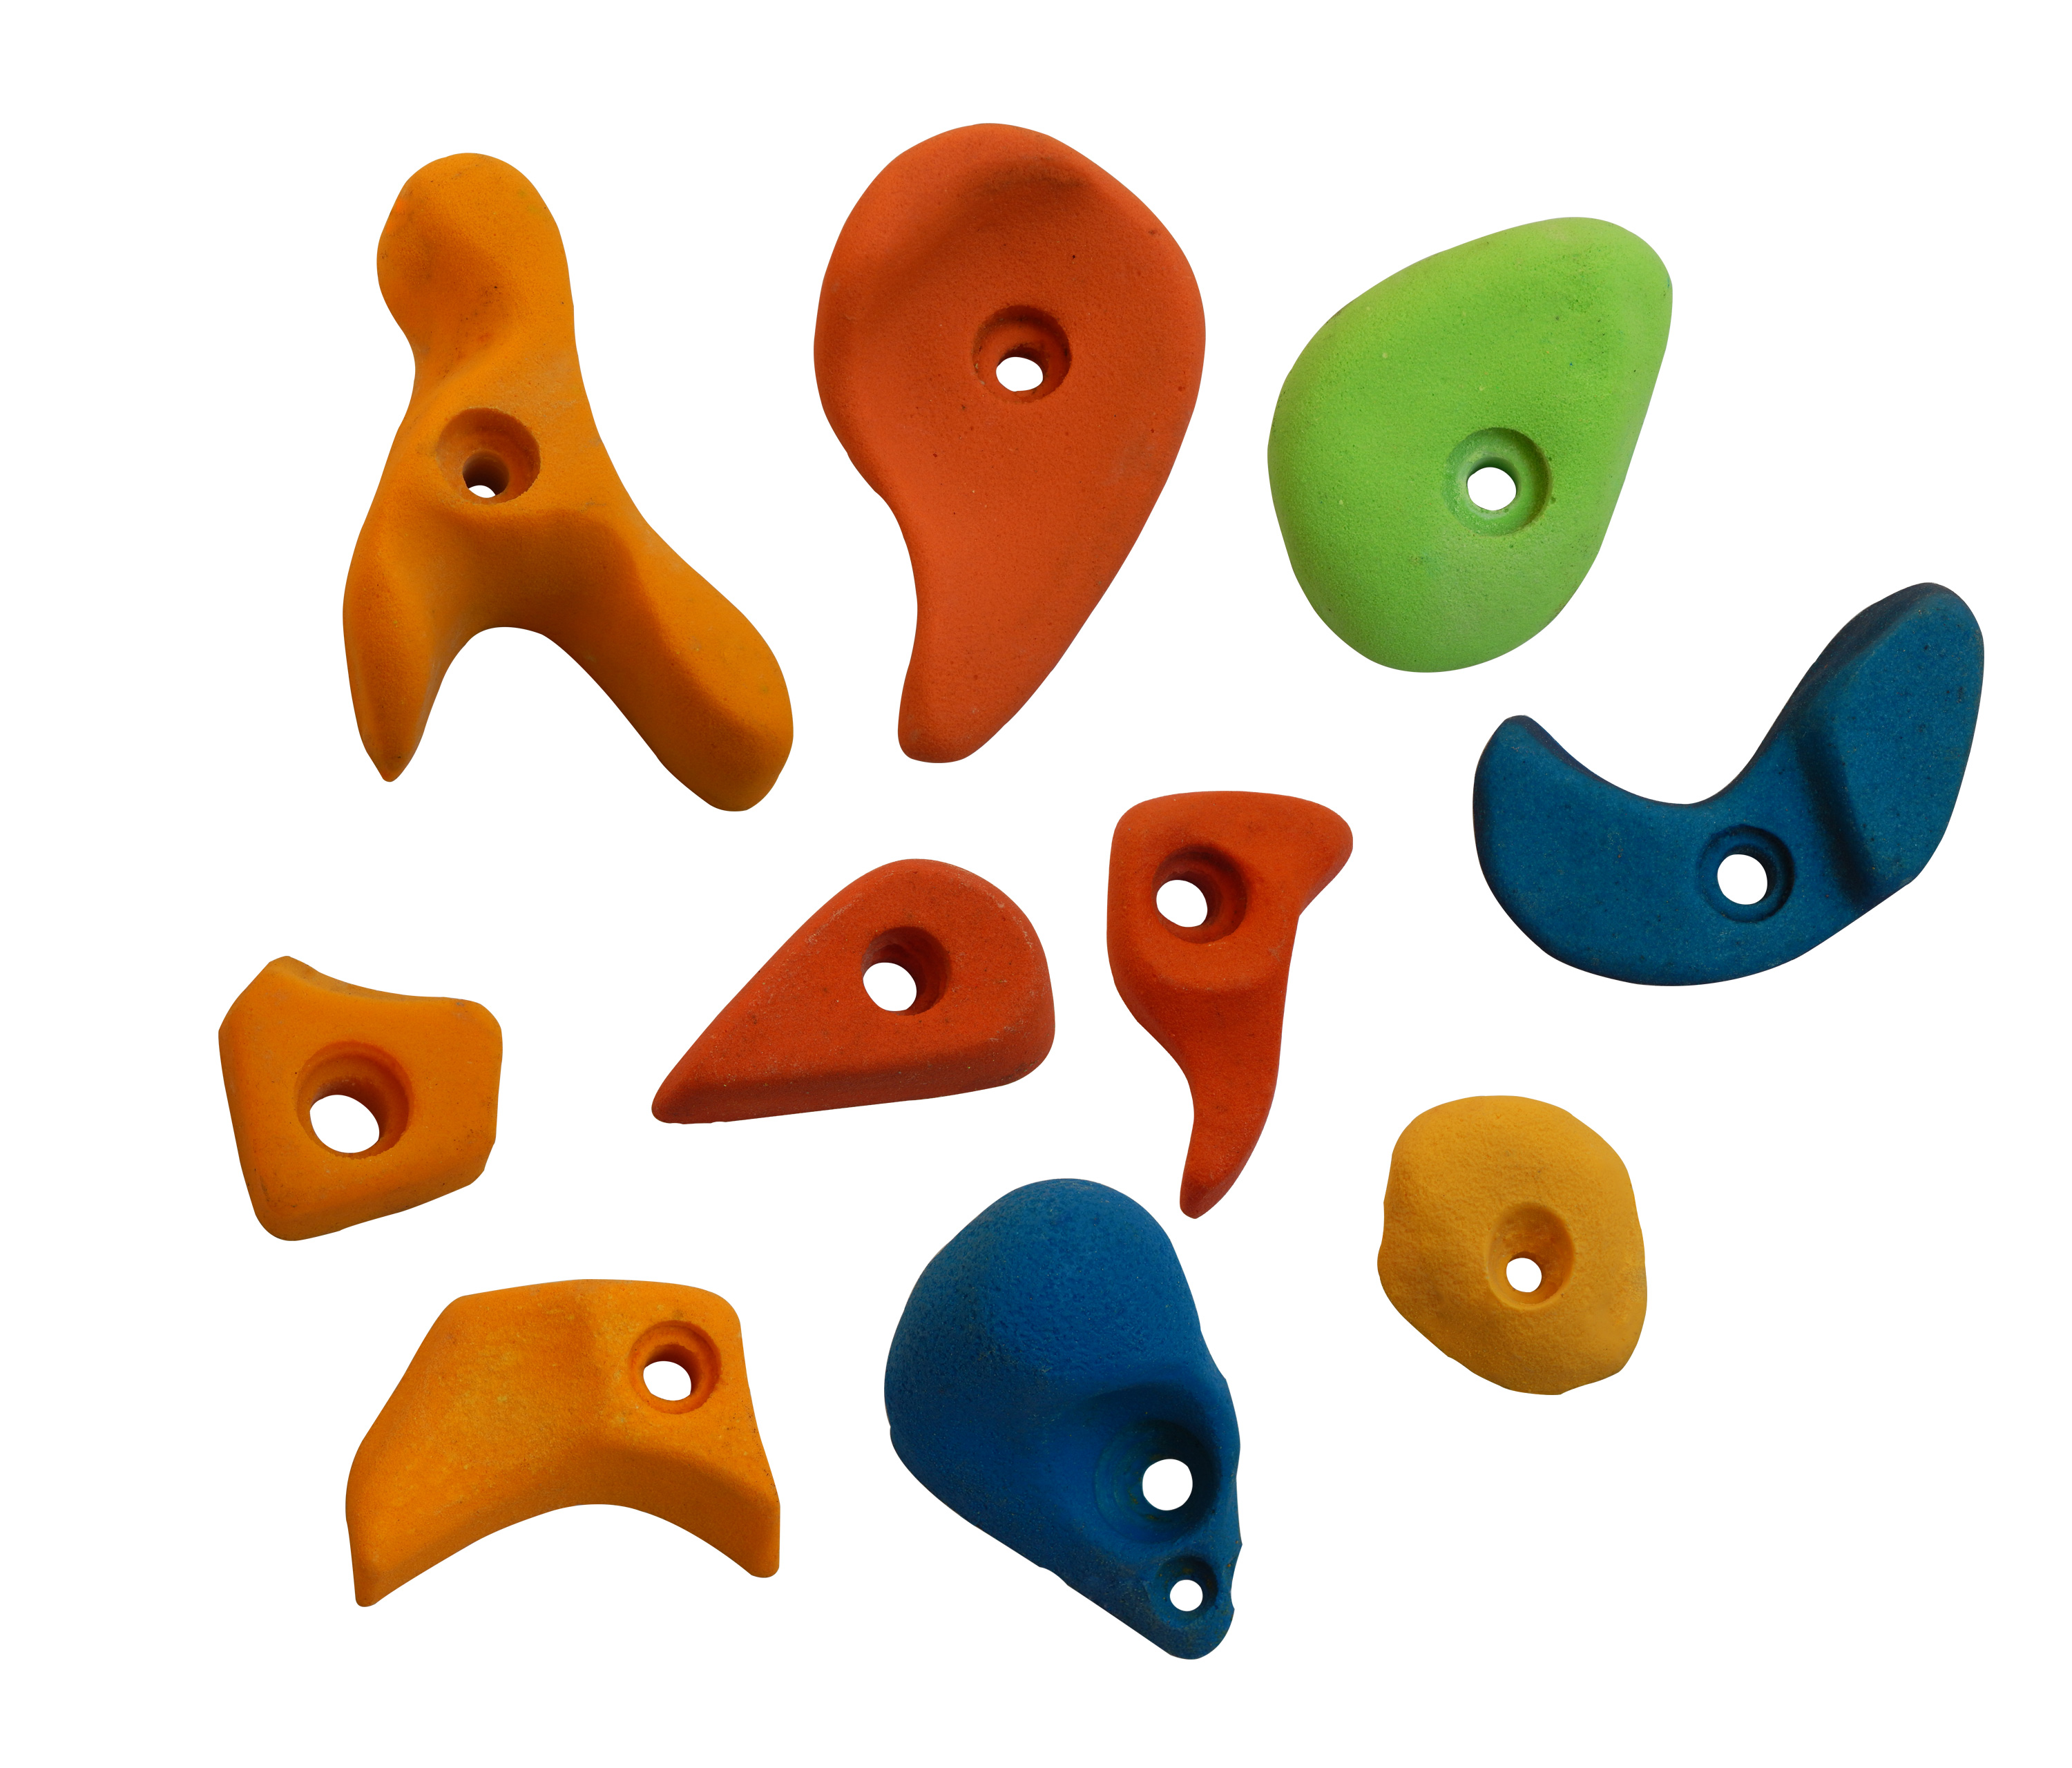 Mix Climbing Holds Manufacturers in Madhya Pradesh